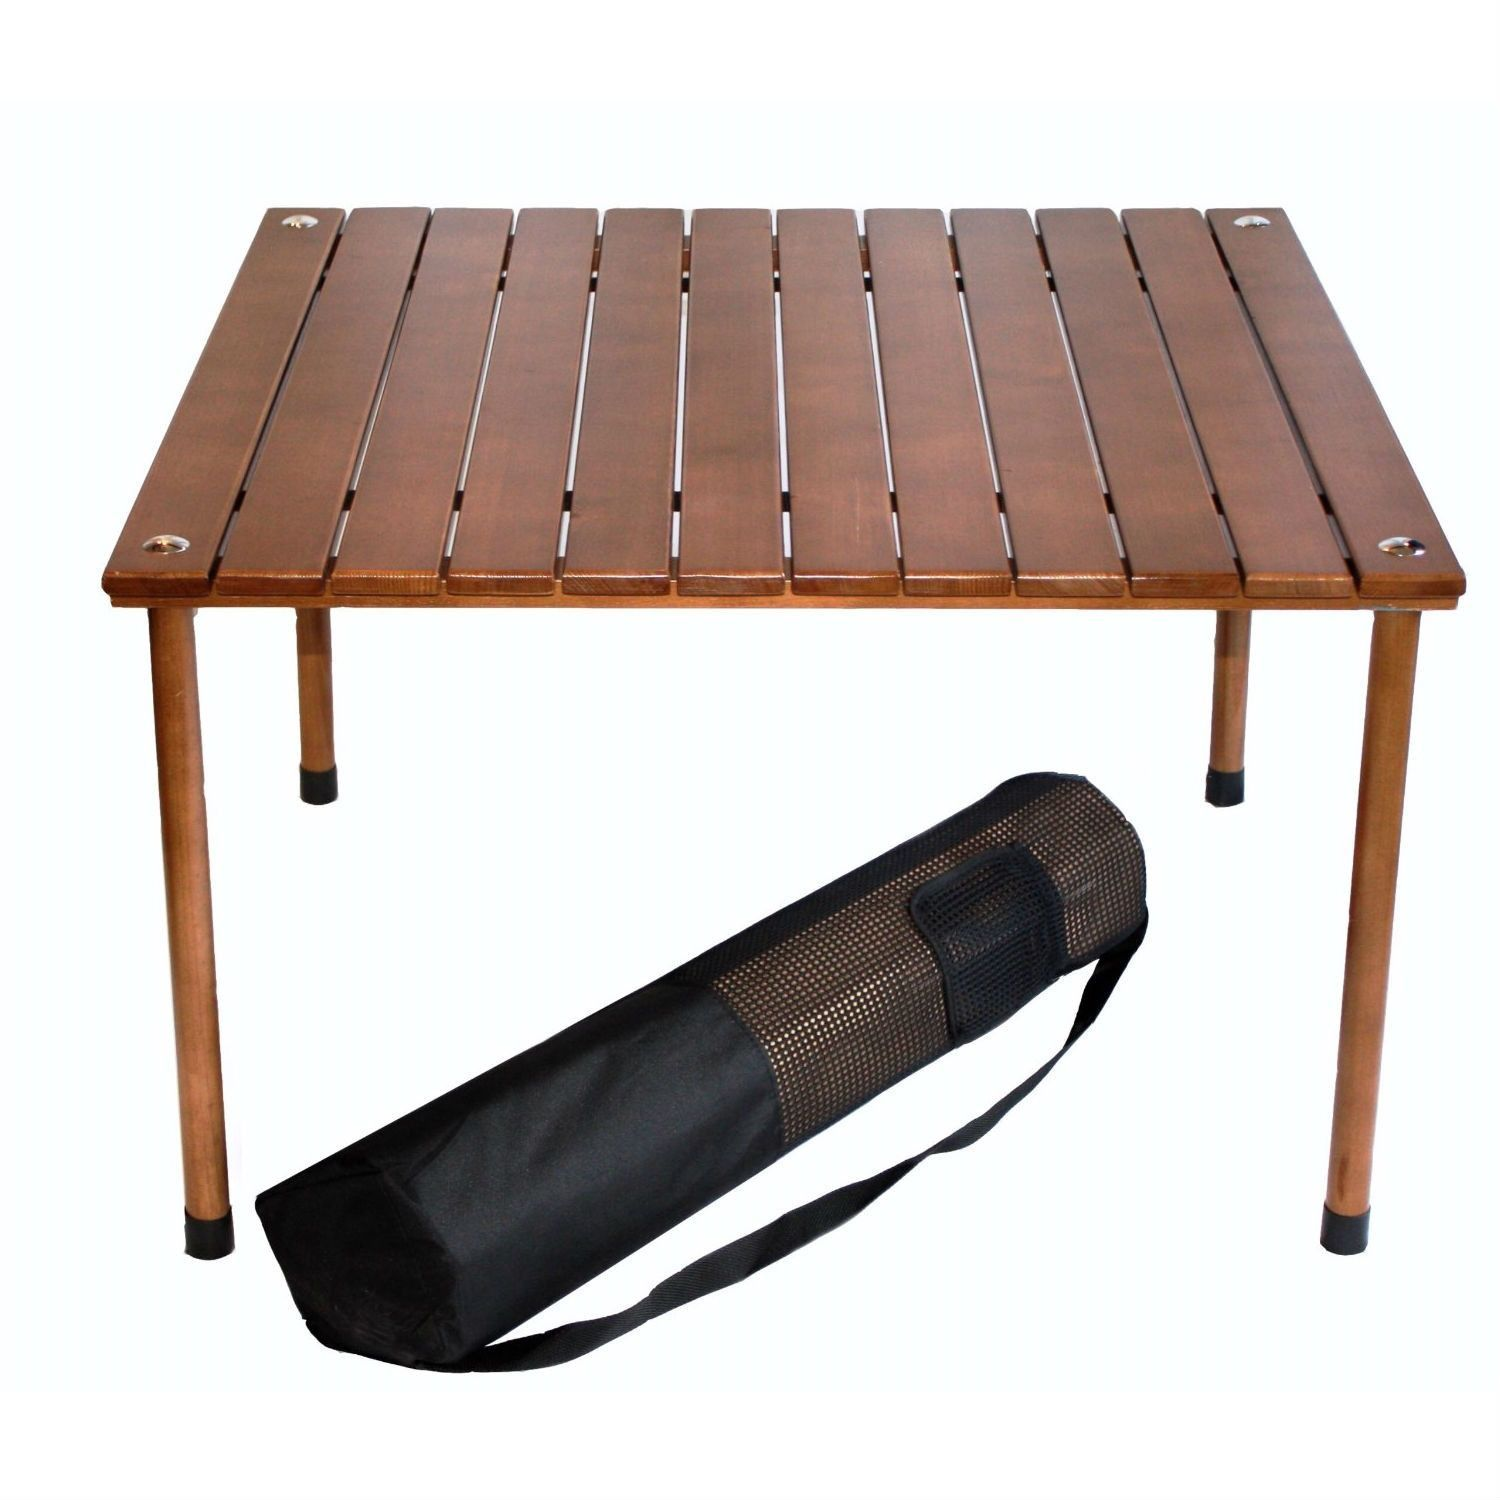 Outdoor Portable Folding Table With Carry Bag With Solid Wood Top Camping Table Outdoor Decor Portable Table